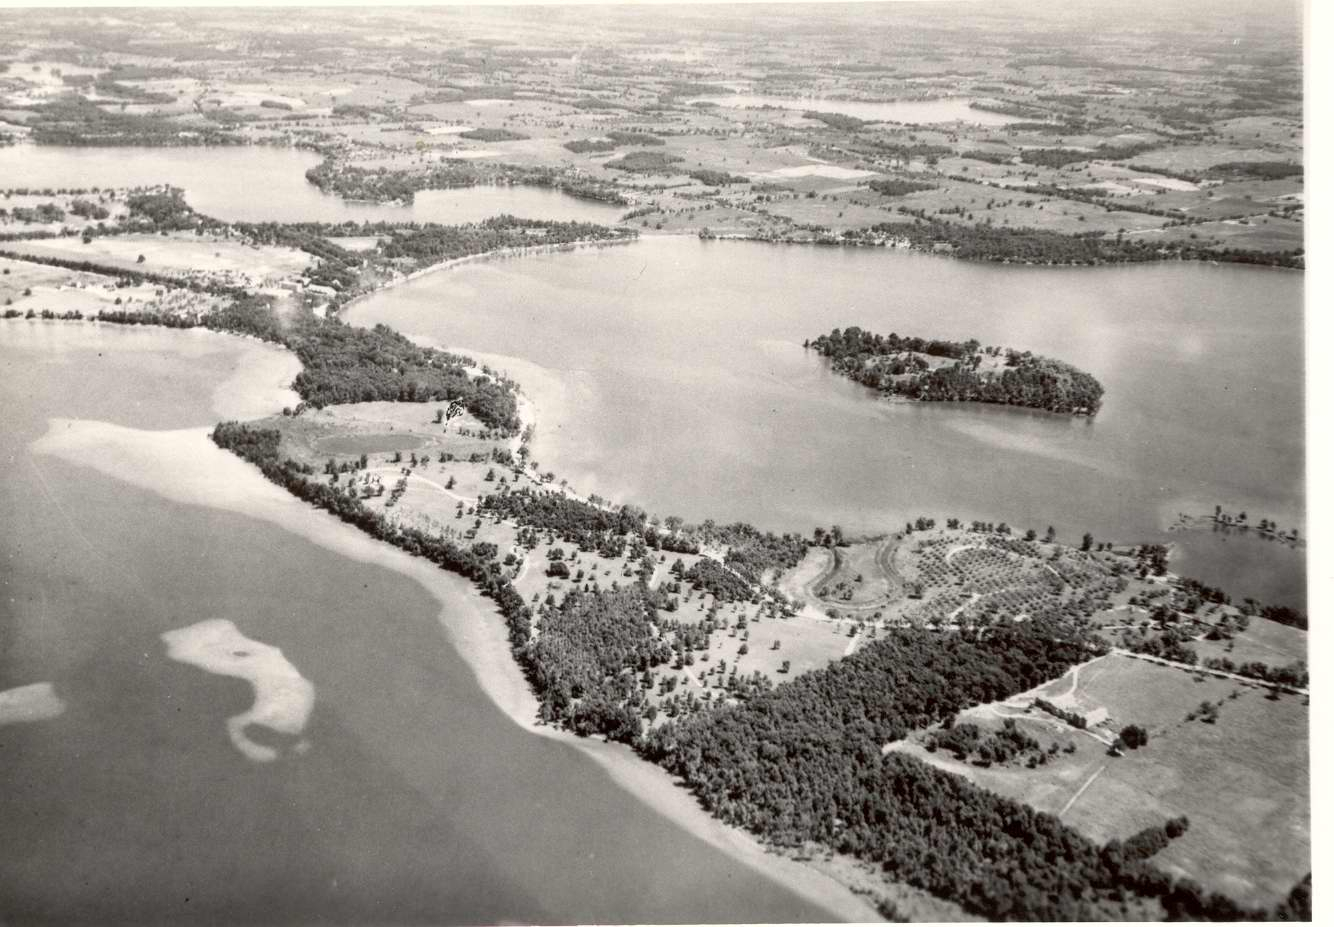 Orchard  Cass Aerial View — Greater West Bloomfield